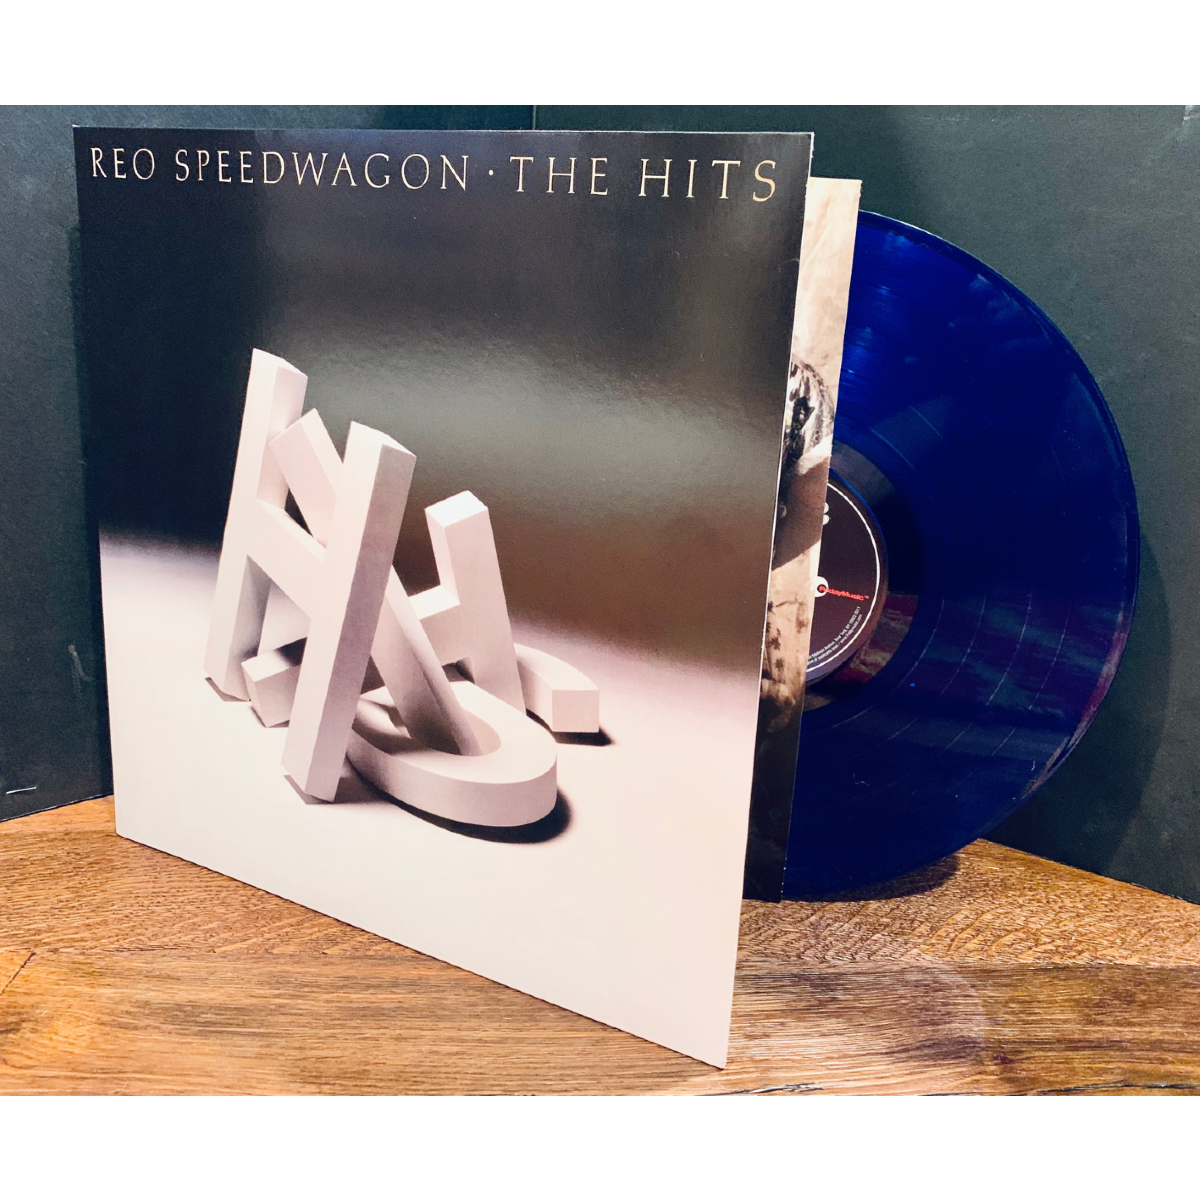 REO Speedwagon - The Hits (180 Gram Blue Audiophile Vinyl/Limited Edition/Gatefold Cover)